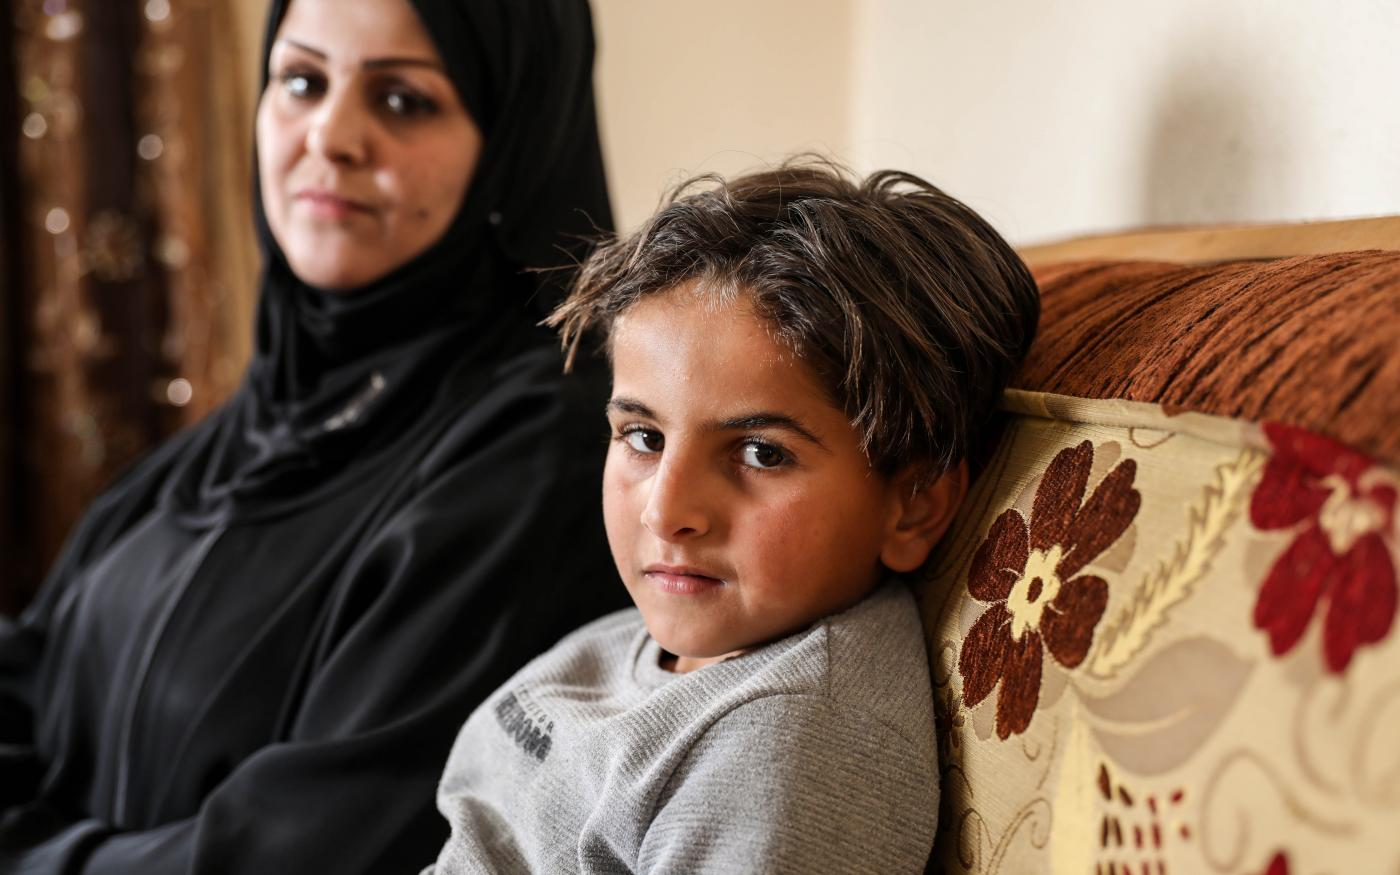 Fearing her son Ameer's anxiety might worsen, Gharqoud now teaches him at home. March 2021 (Mohammed A. Alhajjar)